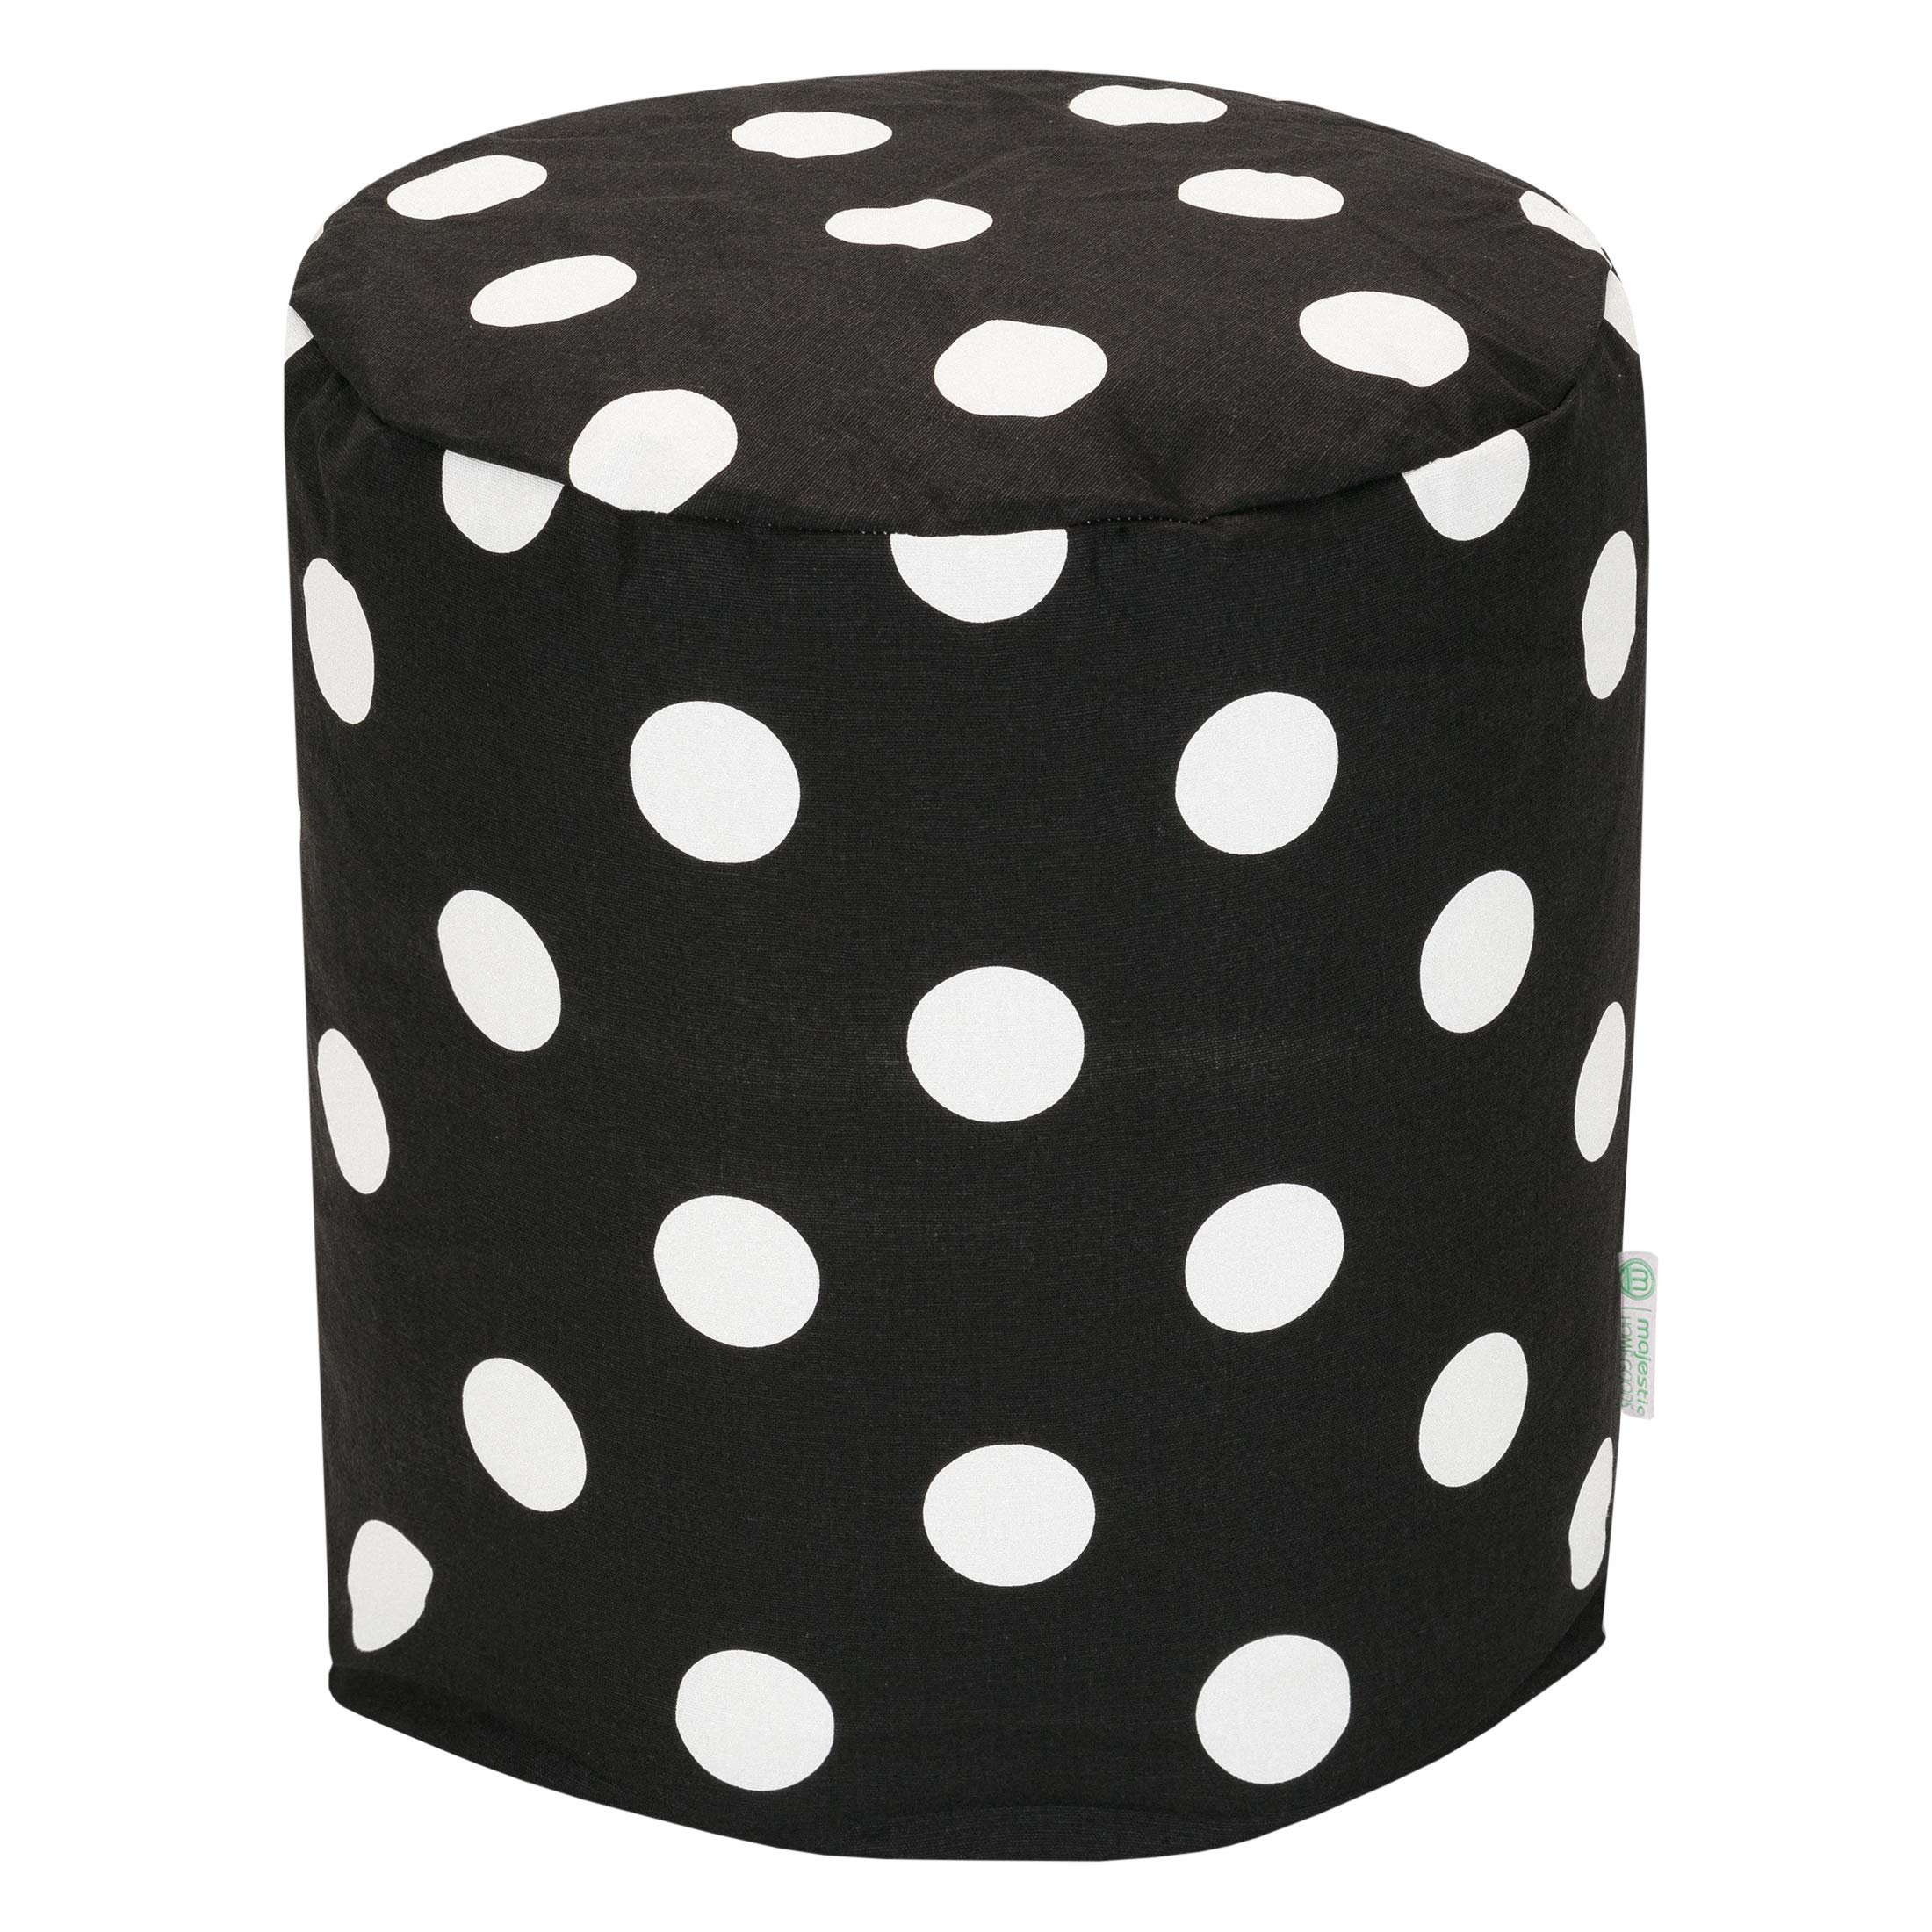 Majestic Home Goods Black Large Polka Dot Indoor Bean Bag Ottoman Pouf 16'' L x 16'' W x 17'' H